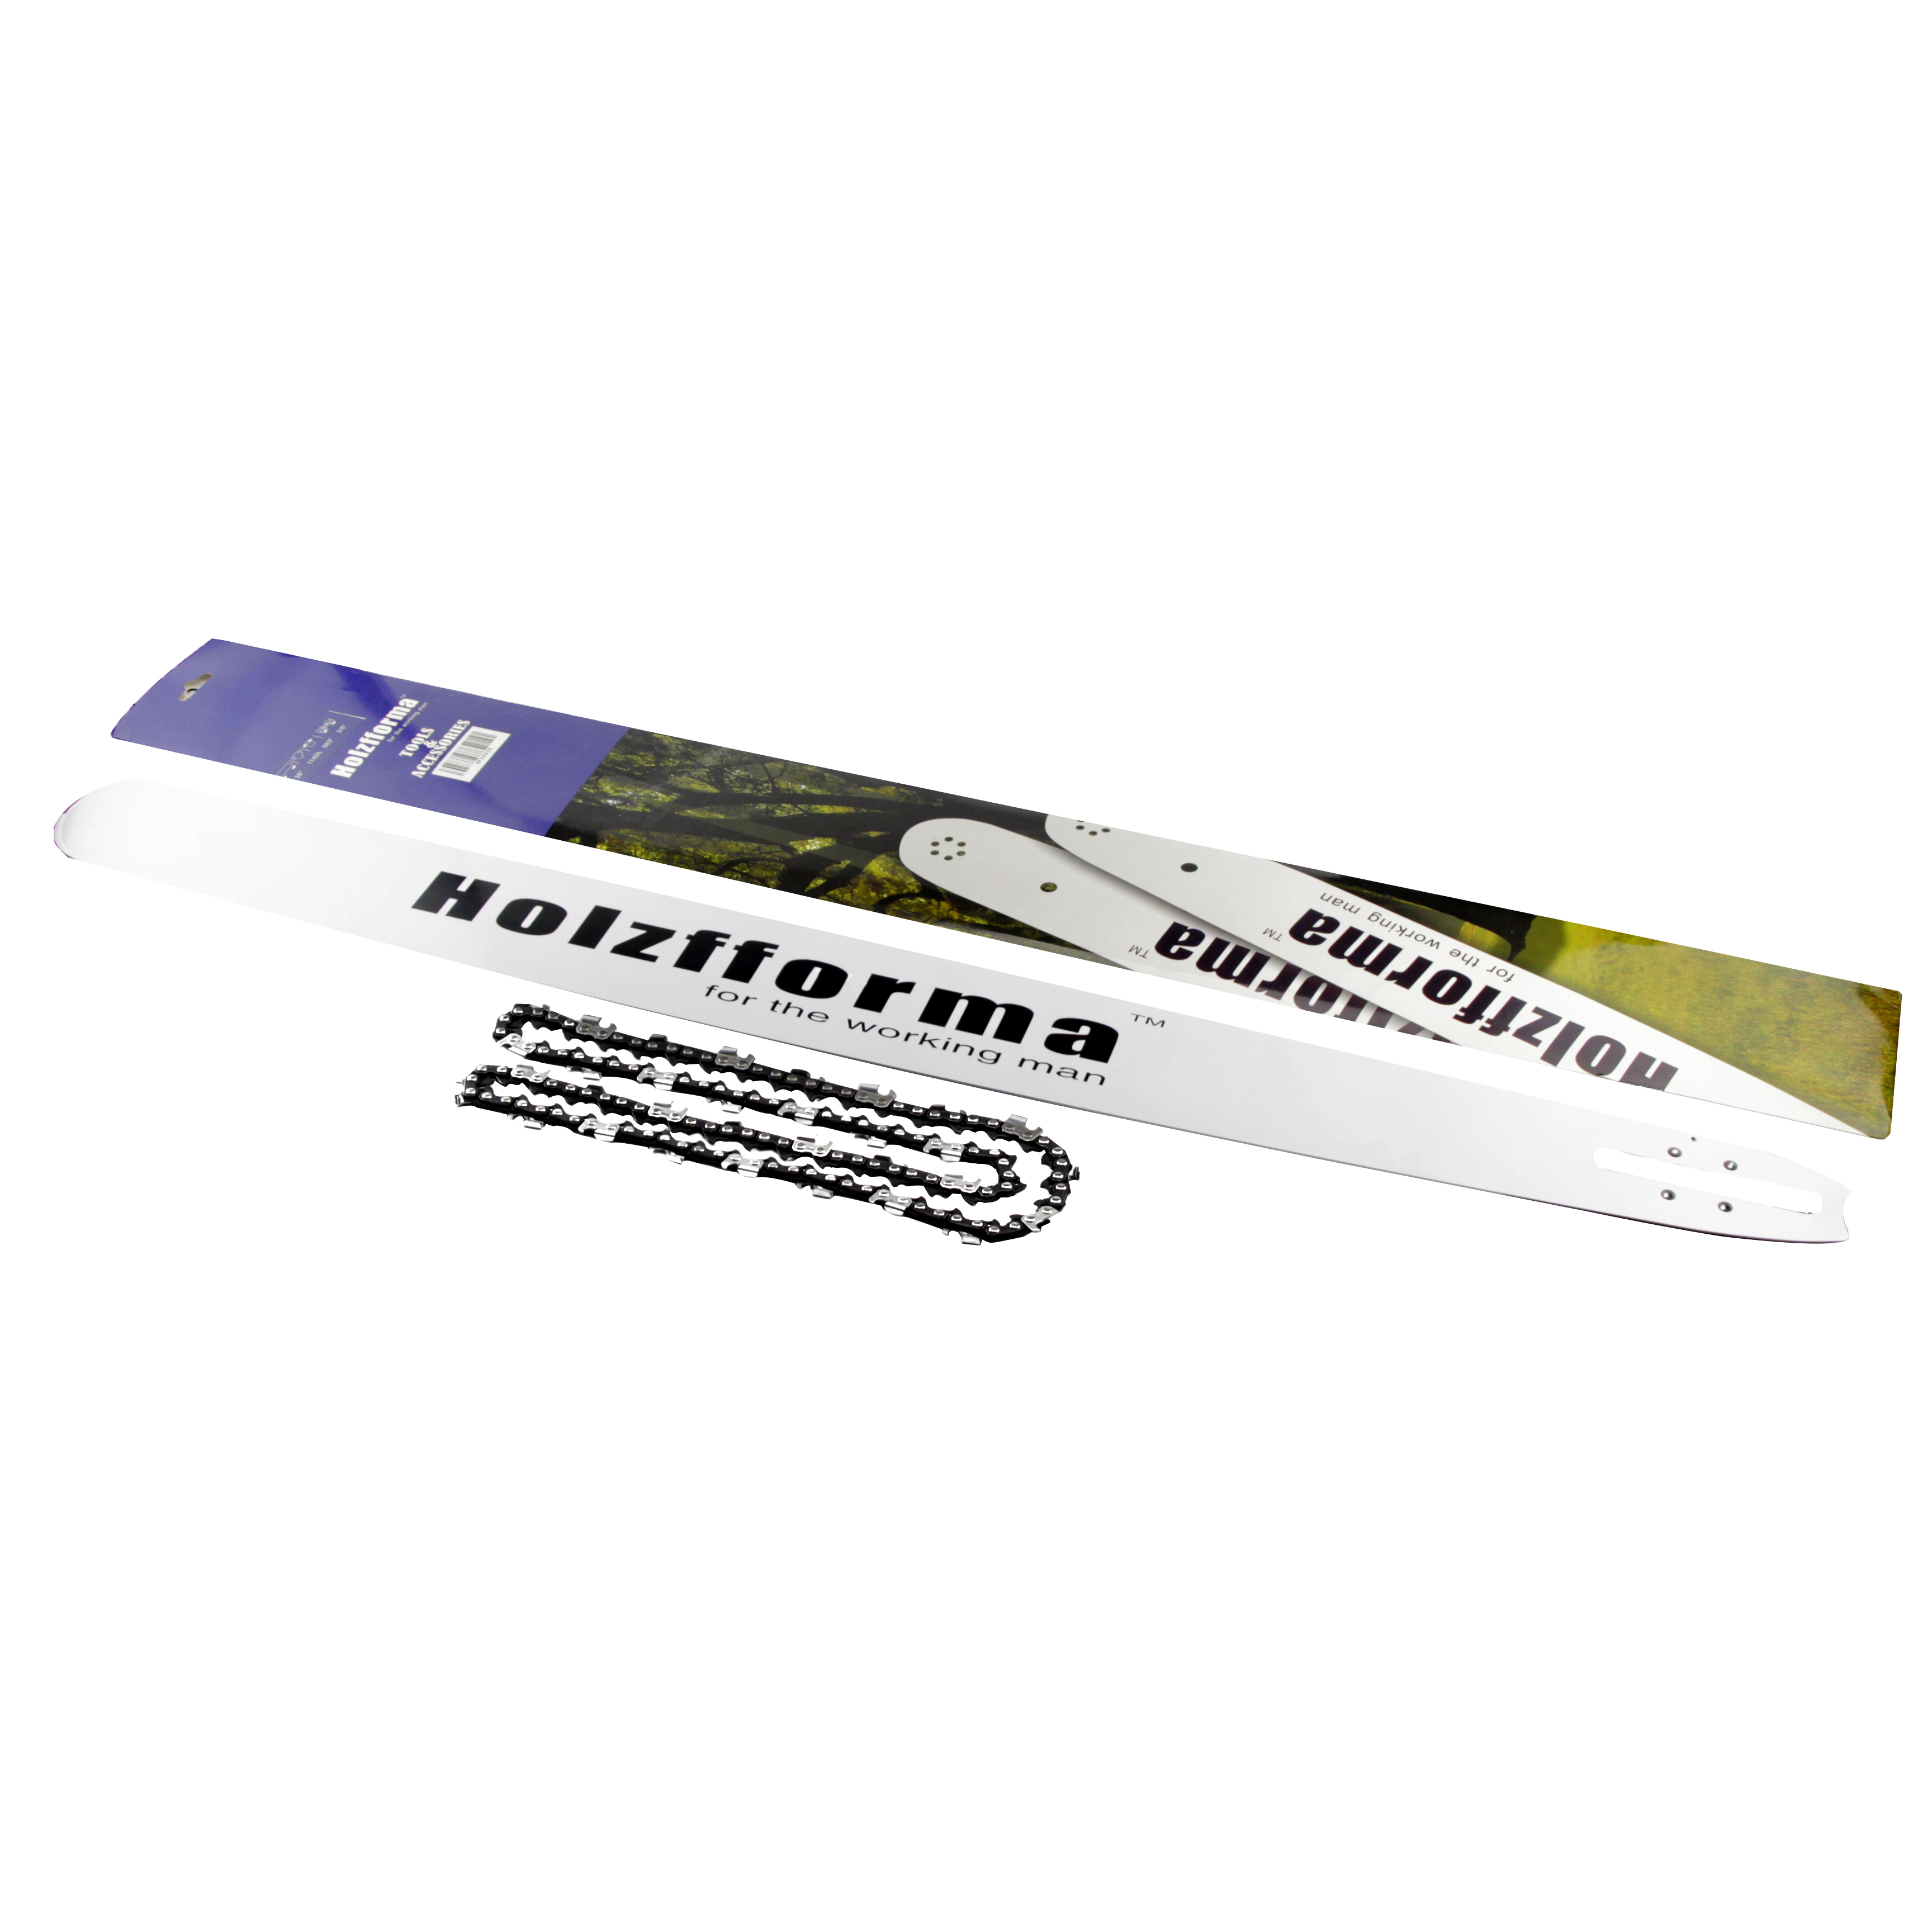 US$ 38.72 - 36 Guide Bar & Saw Chain Combo 0.404 .063 For Stihl Chainsaw  090 070 - www.huztl.net